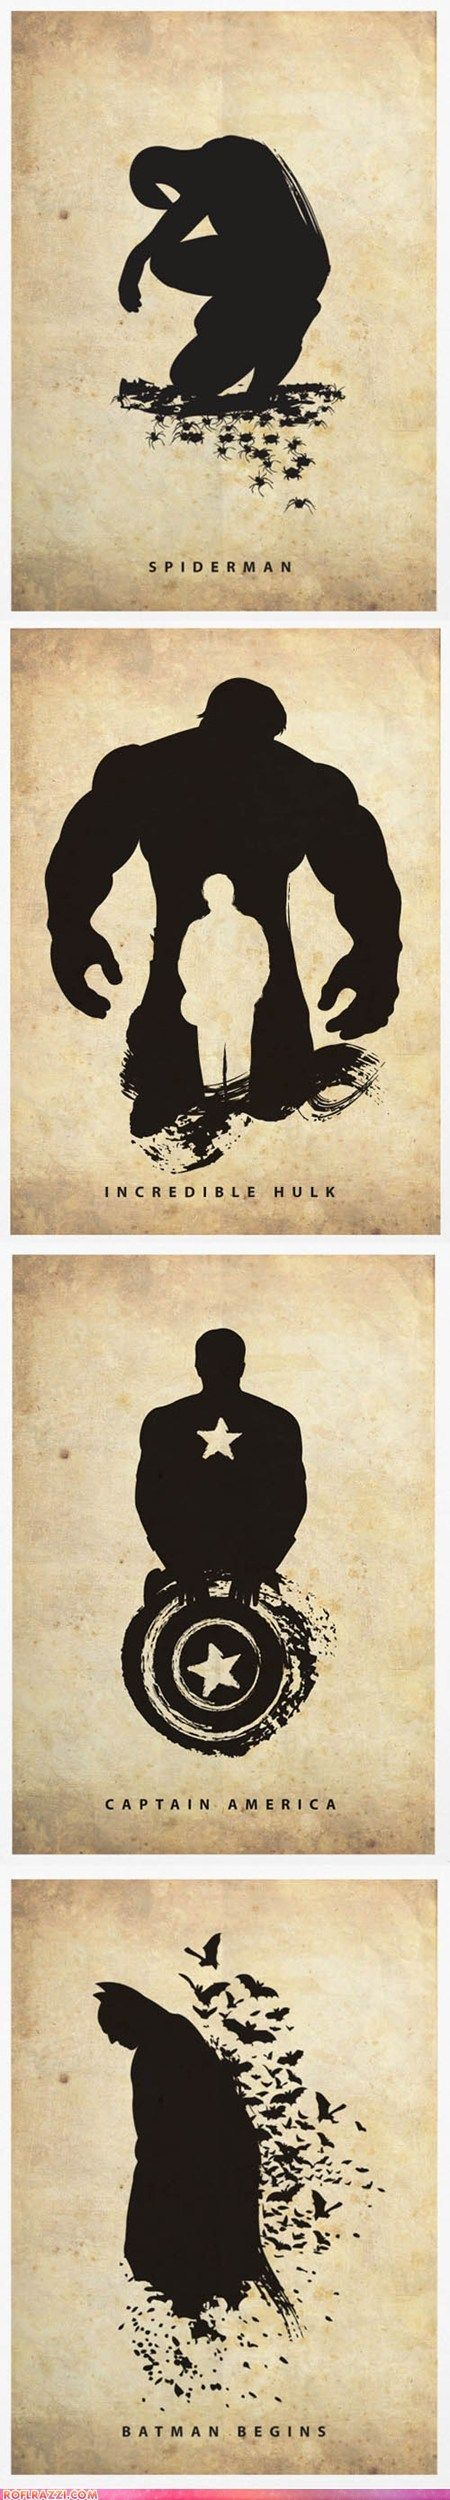 Marvel silhouettesBook Art, The Batman, Comics Book, Little Boys Room, Comic Books, Captain America, Superheroes, Super Heroes, Superhero Silhouettes